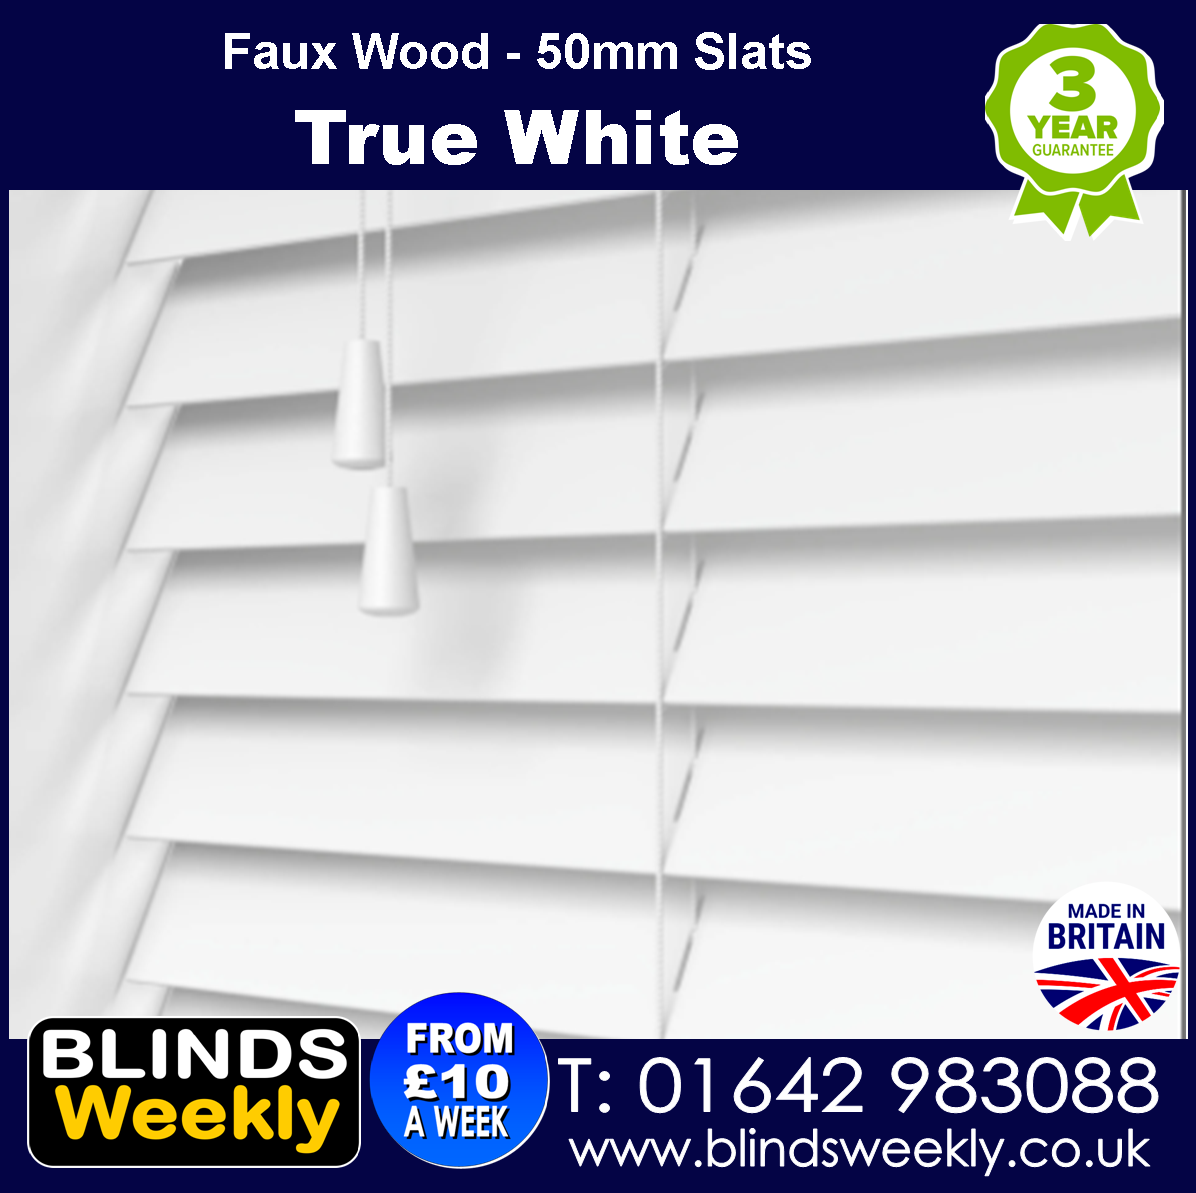 True White 50mm Faux Wood Blinds from Blinds Weekly